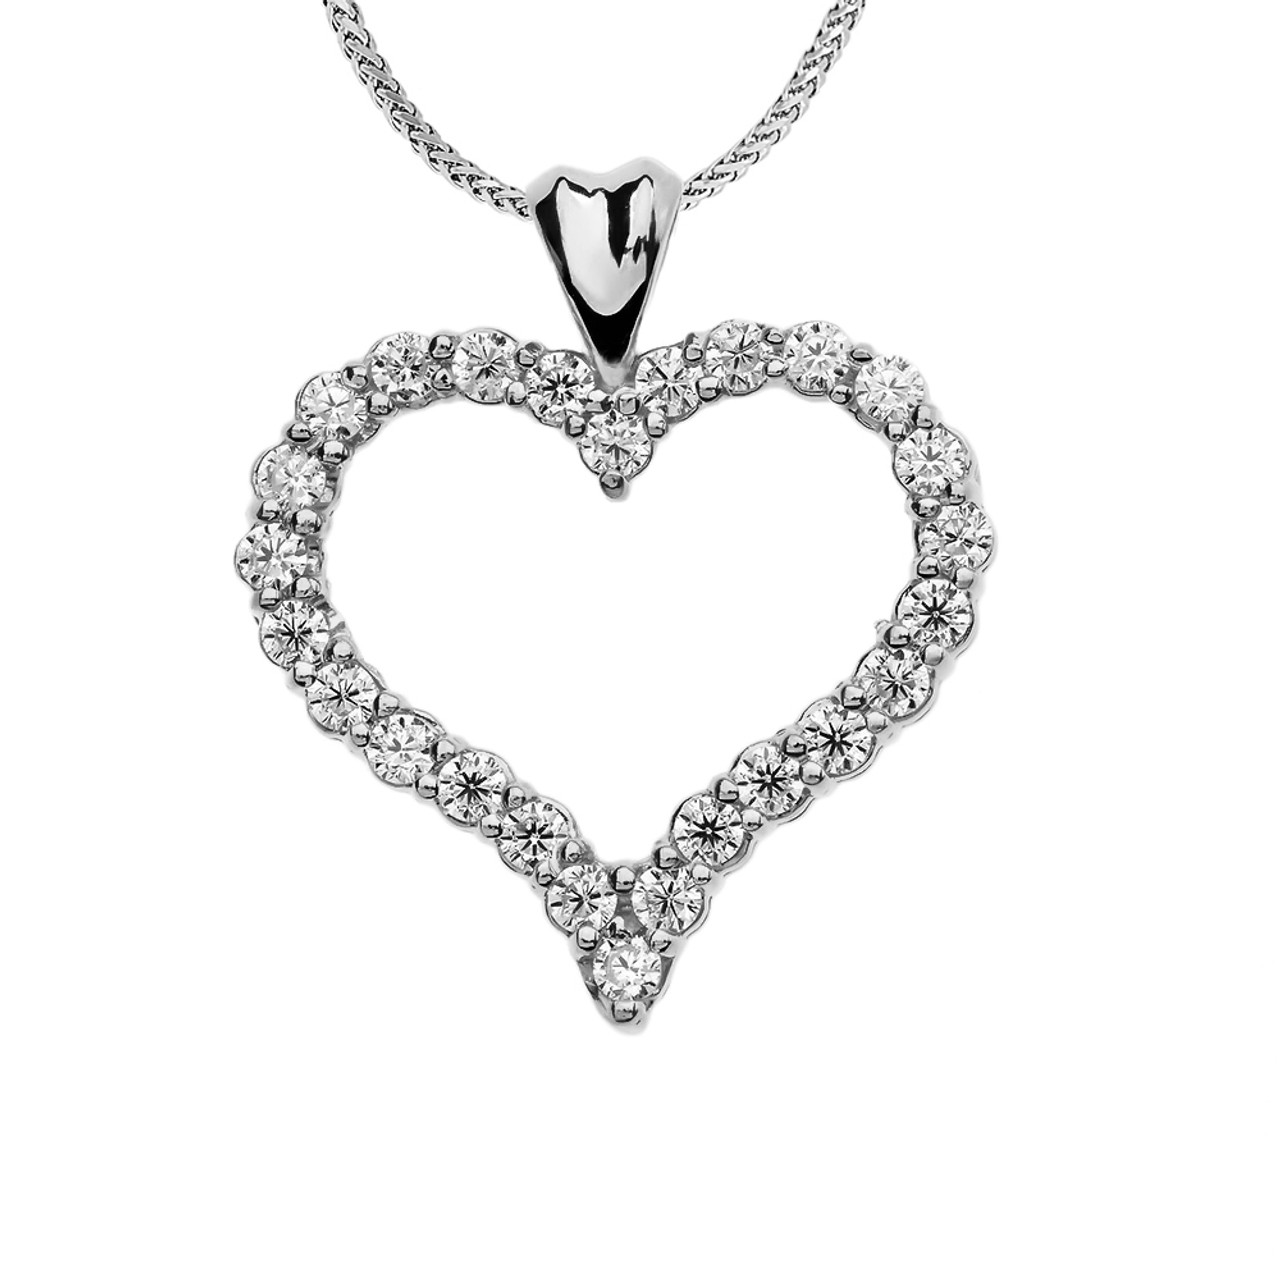 Diamond white gold heart pendant necklace 1 carat diamond heart white gold pendant necklace aloadofball Image collections